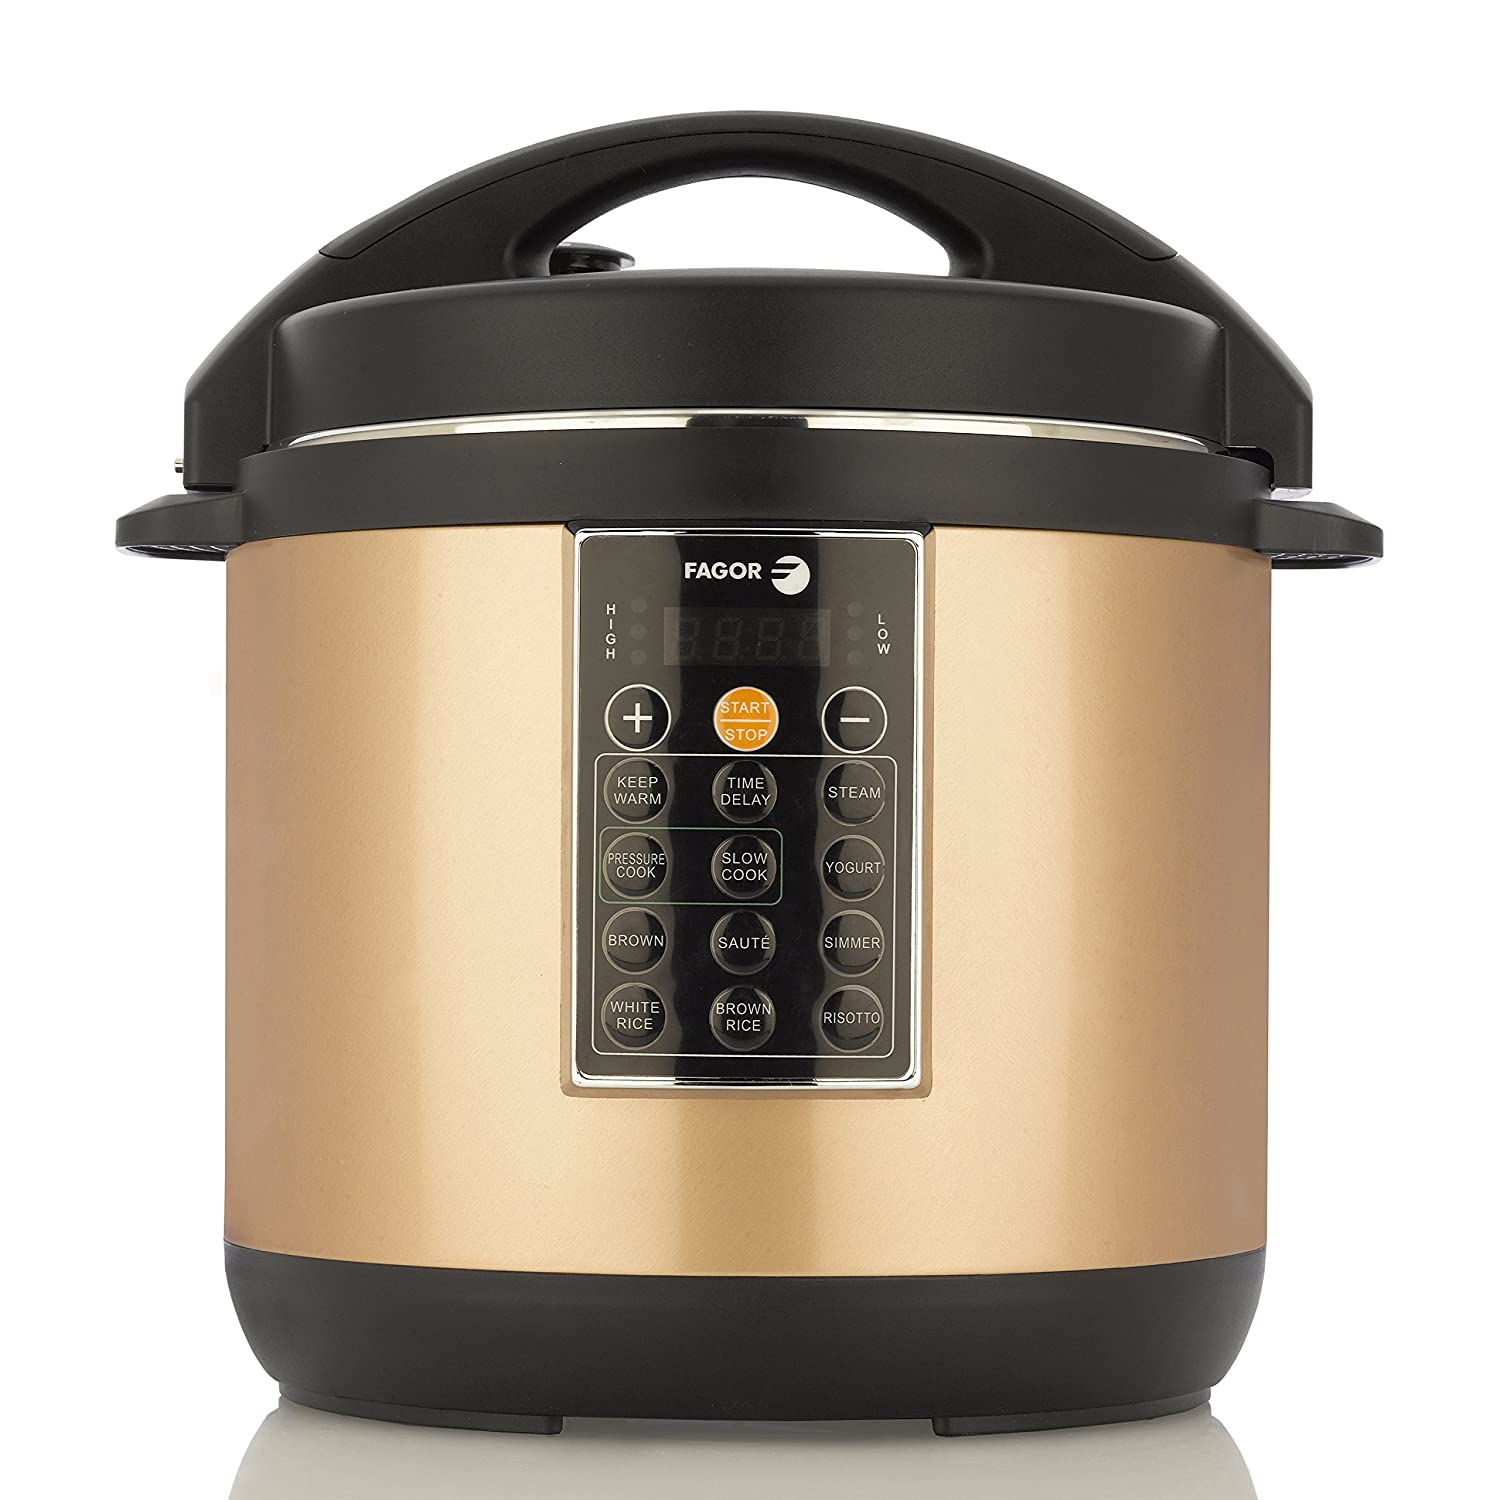 Fagor LUX Multi-Cooker, 6 quart, Electric Pressure Cooker, Slow Cooker, Rice Cooker, Yogurt Maker and more, Copper - 935010052